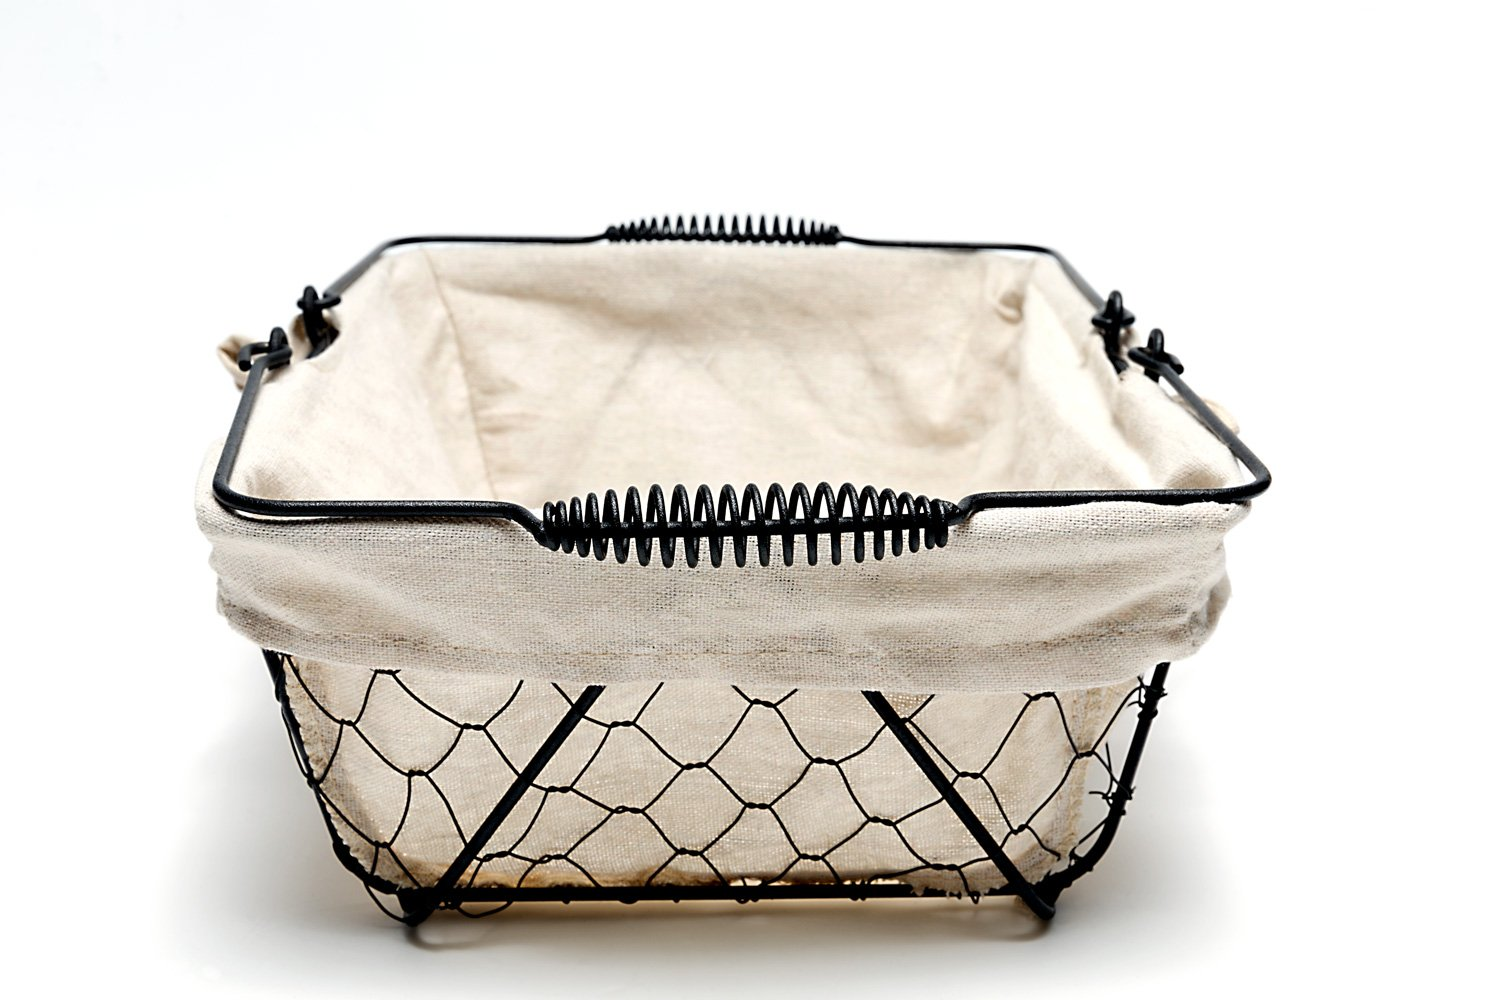 Mkono Vintage Bread Basket Black Wire Food Serving Basket with Removable Liner for Picnic Coffee Kitchen by Mkono (Image #3)